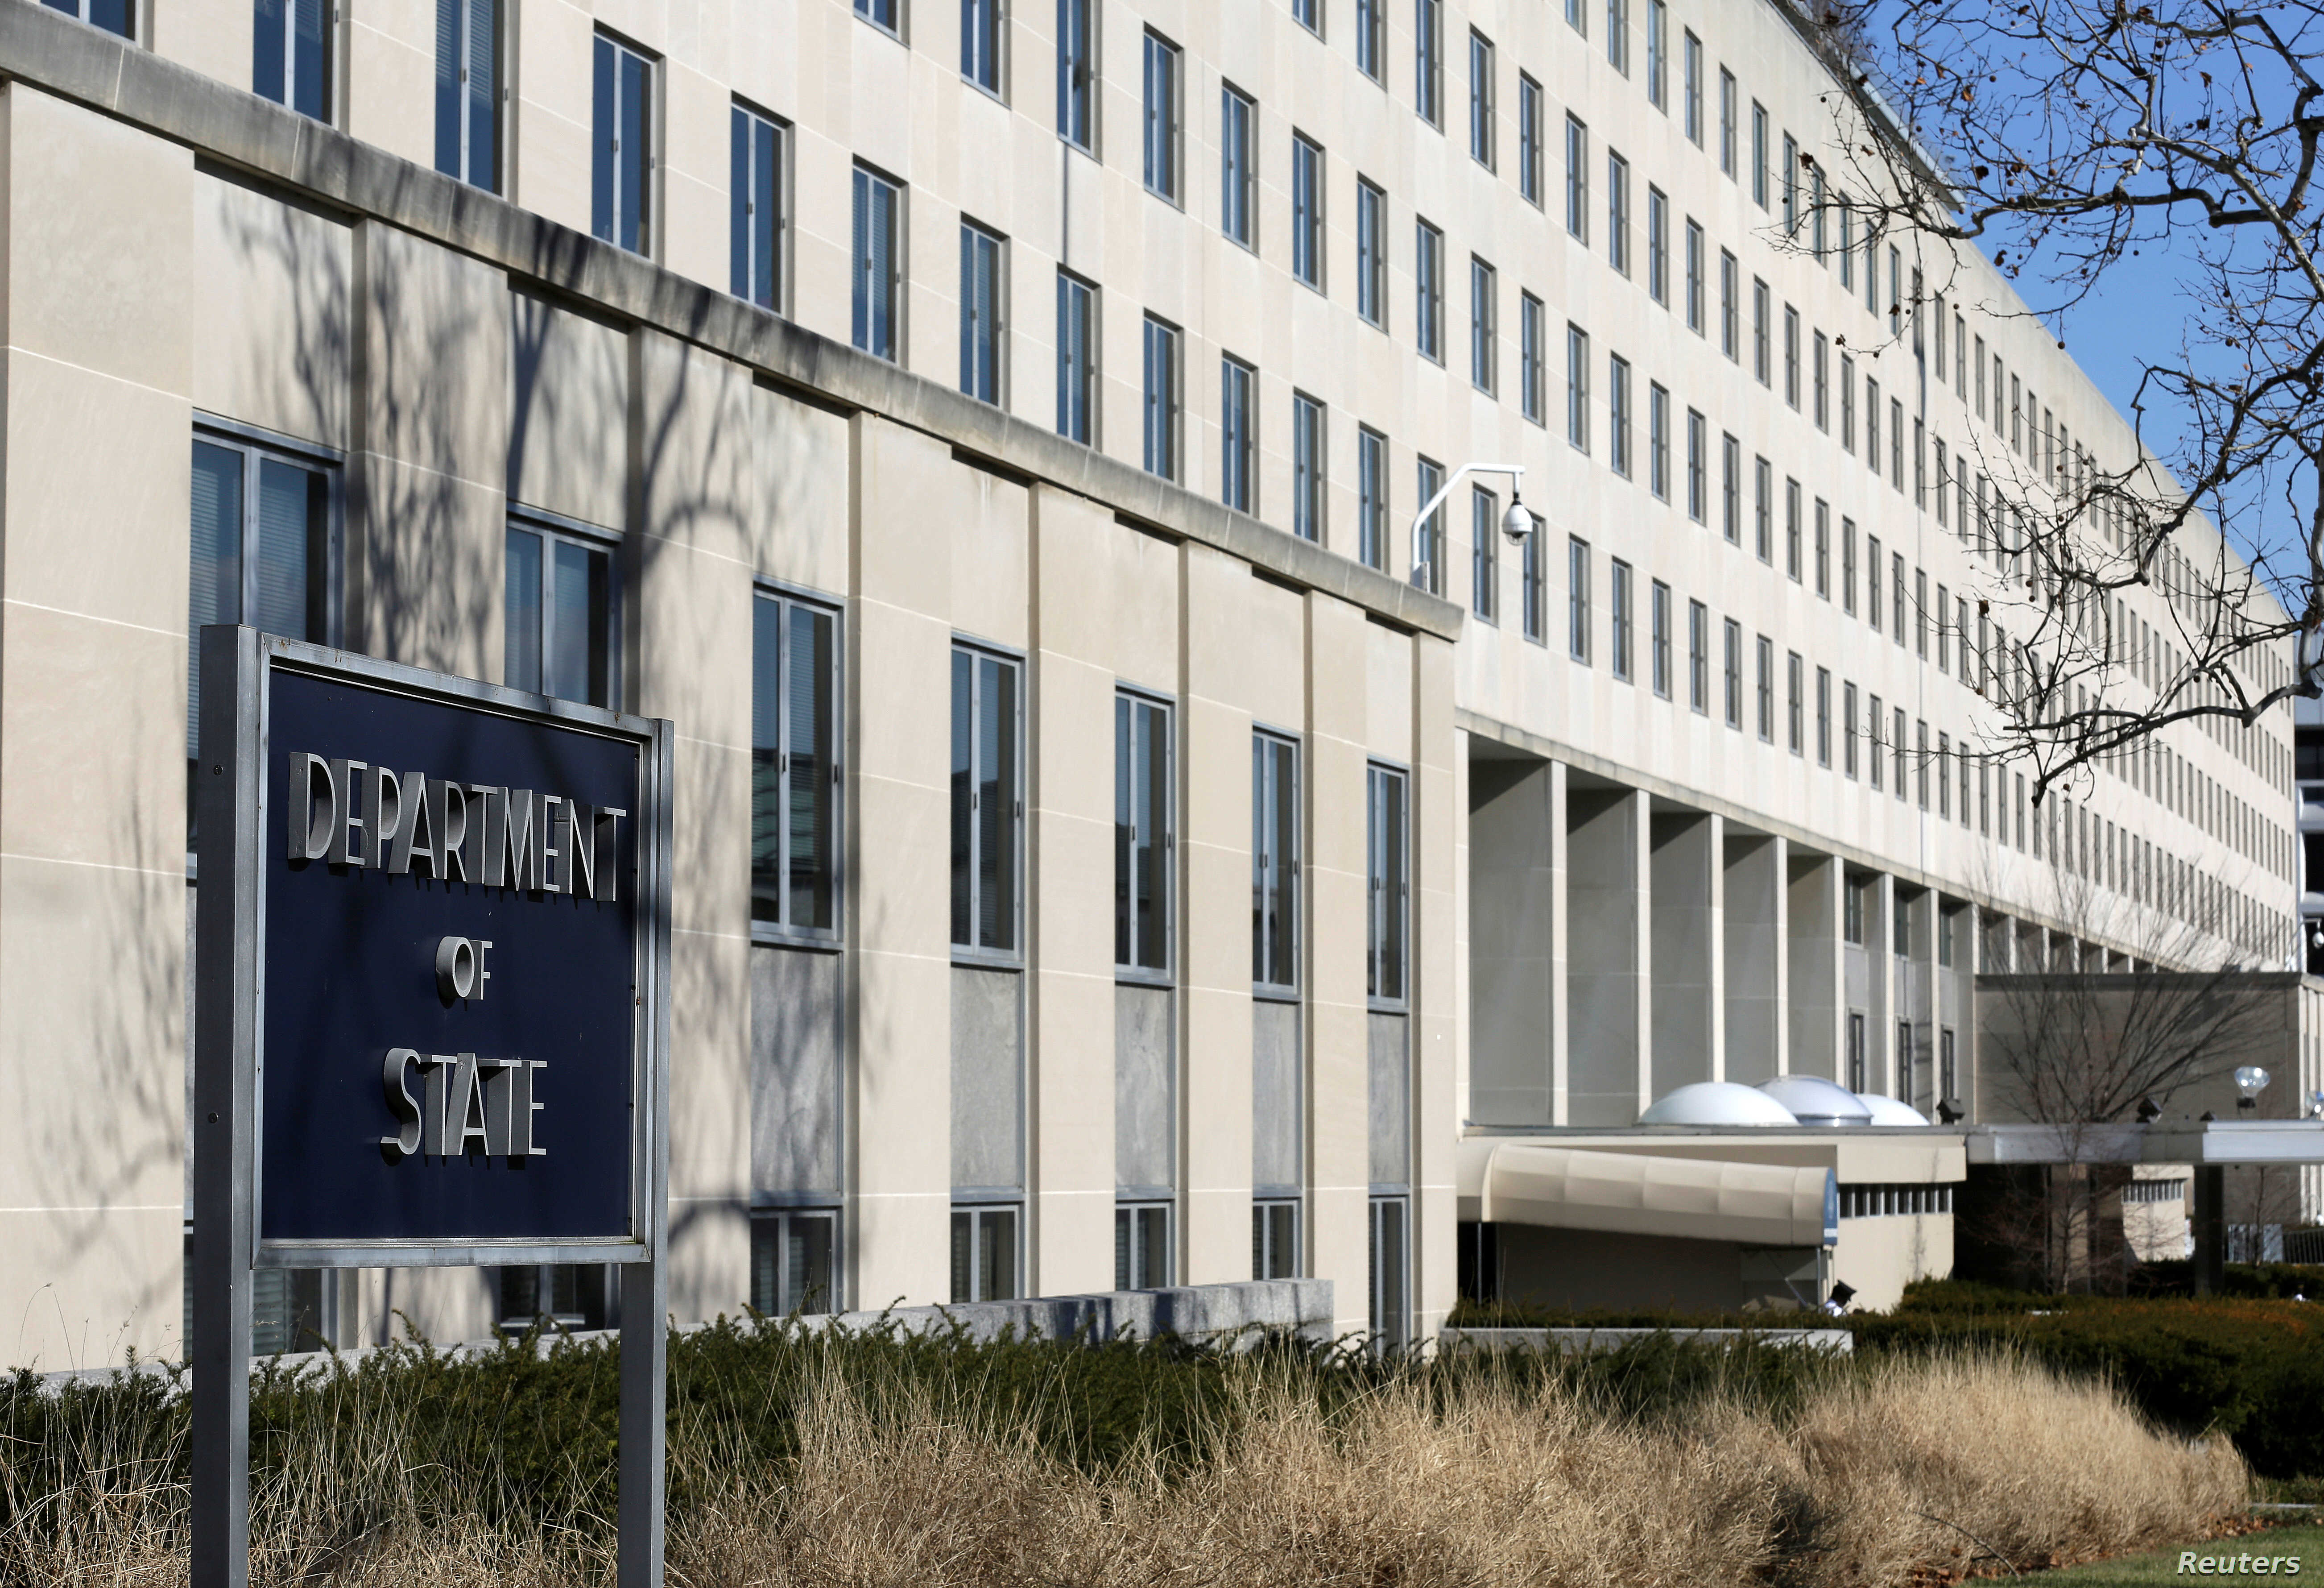 The State Department Building is pictured in Washington, Jan. 26, 2017.